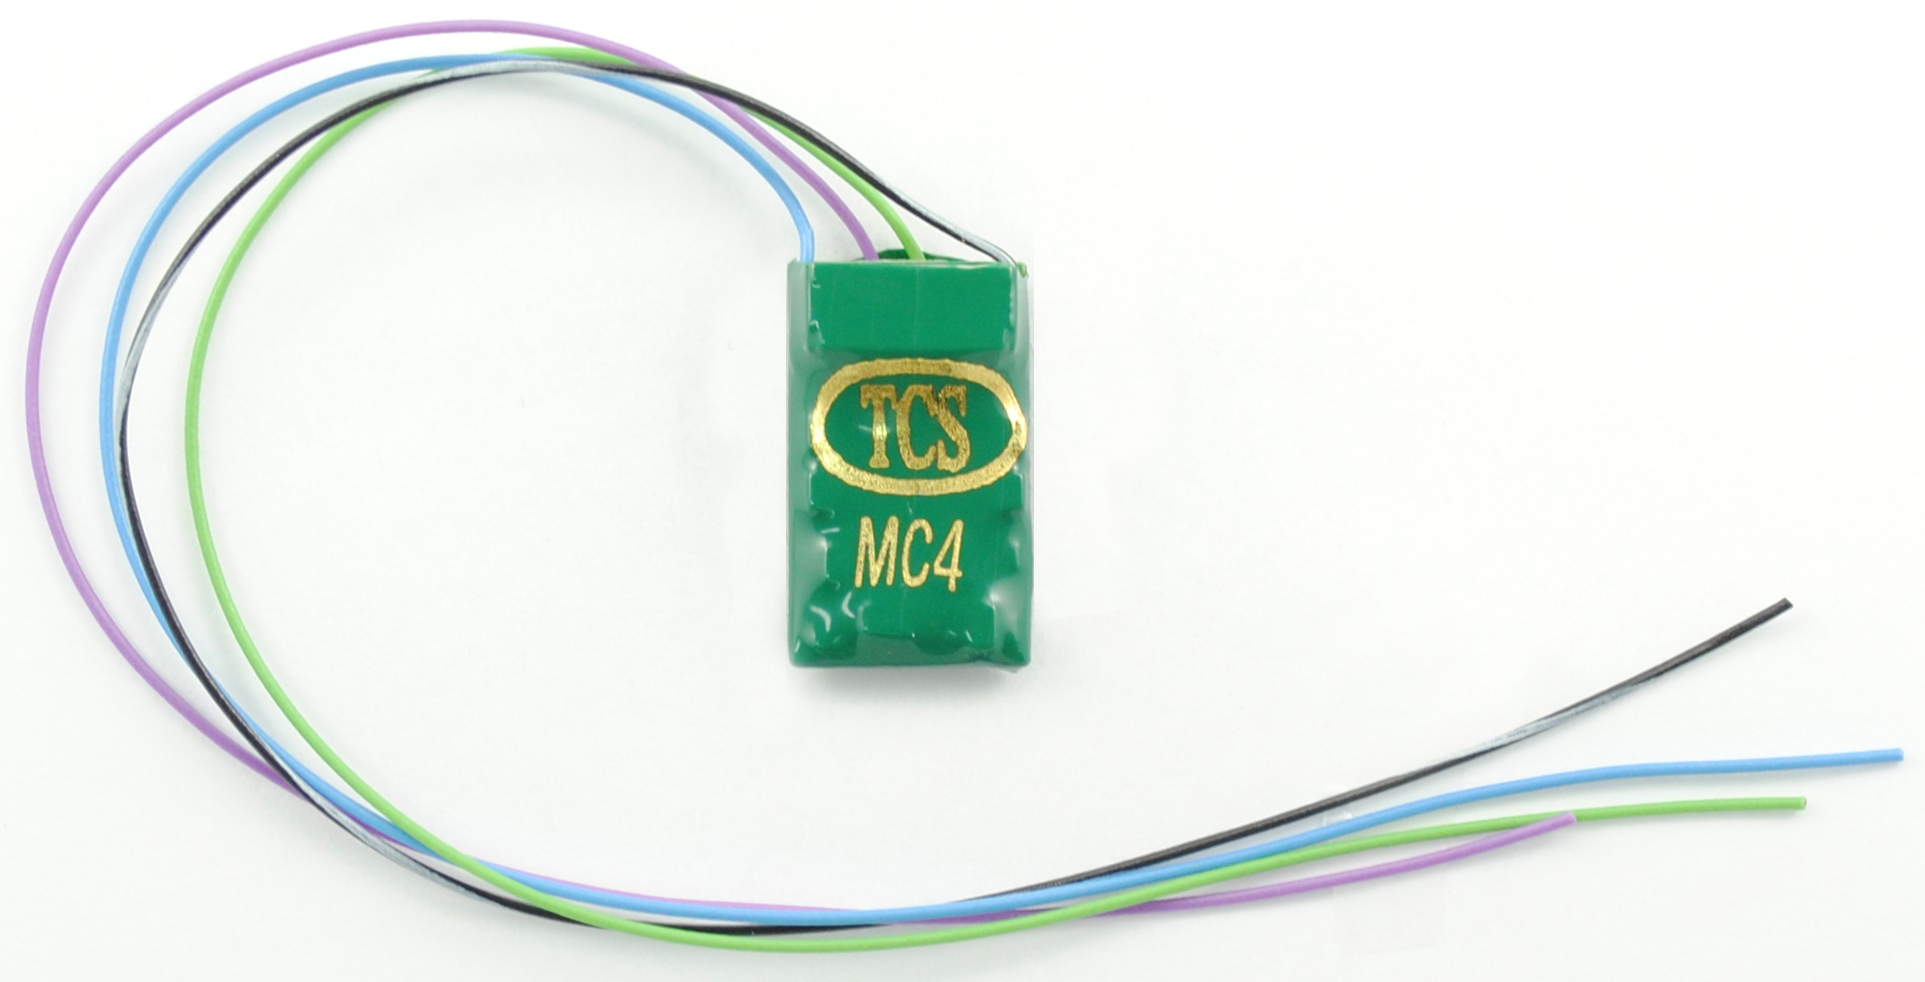 1442 4 function decoder with wire harness and keep-alive wires – #tcs-mc4-ka